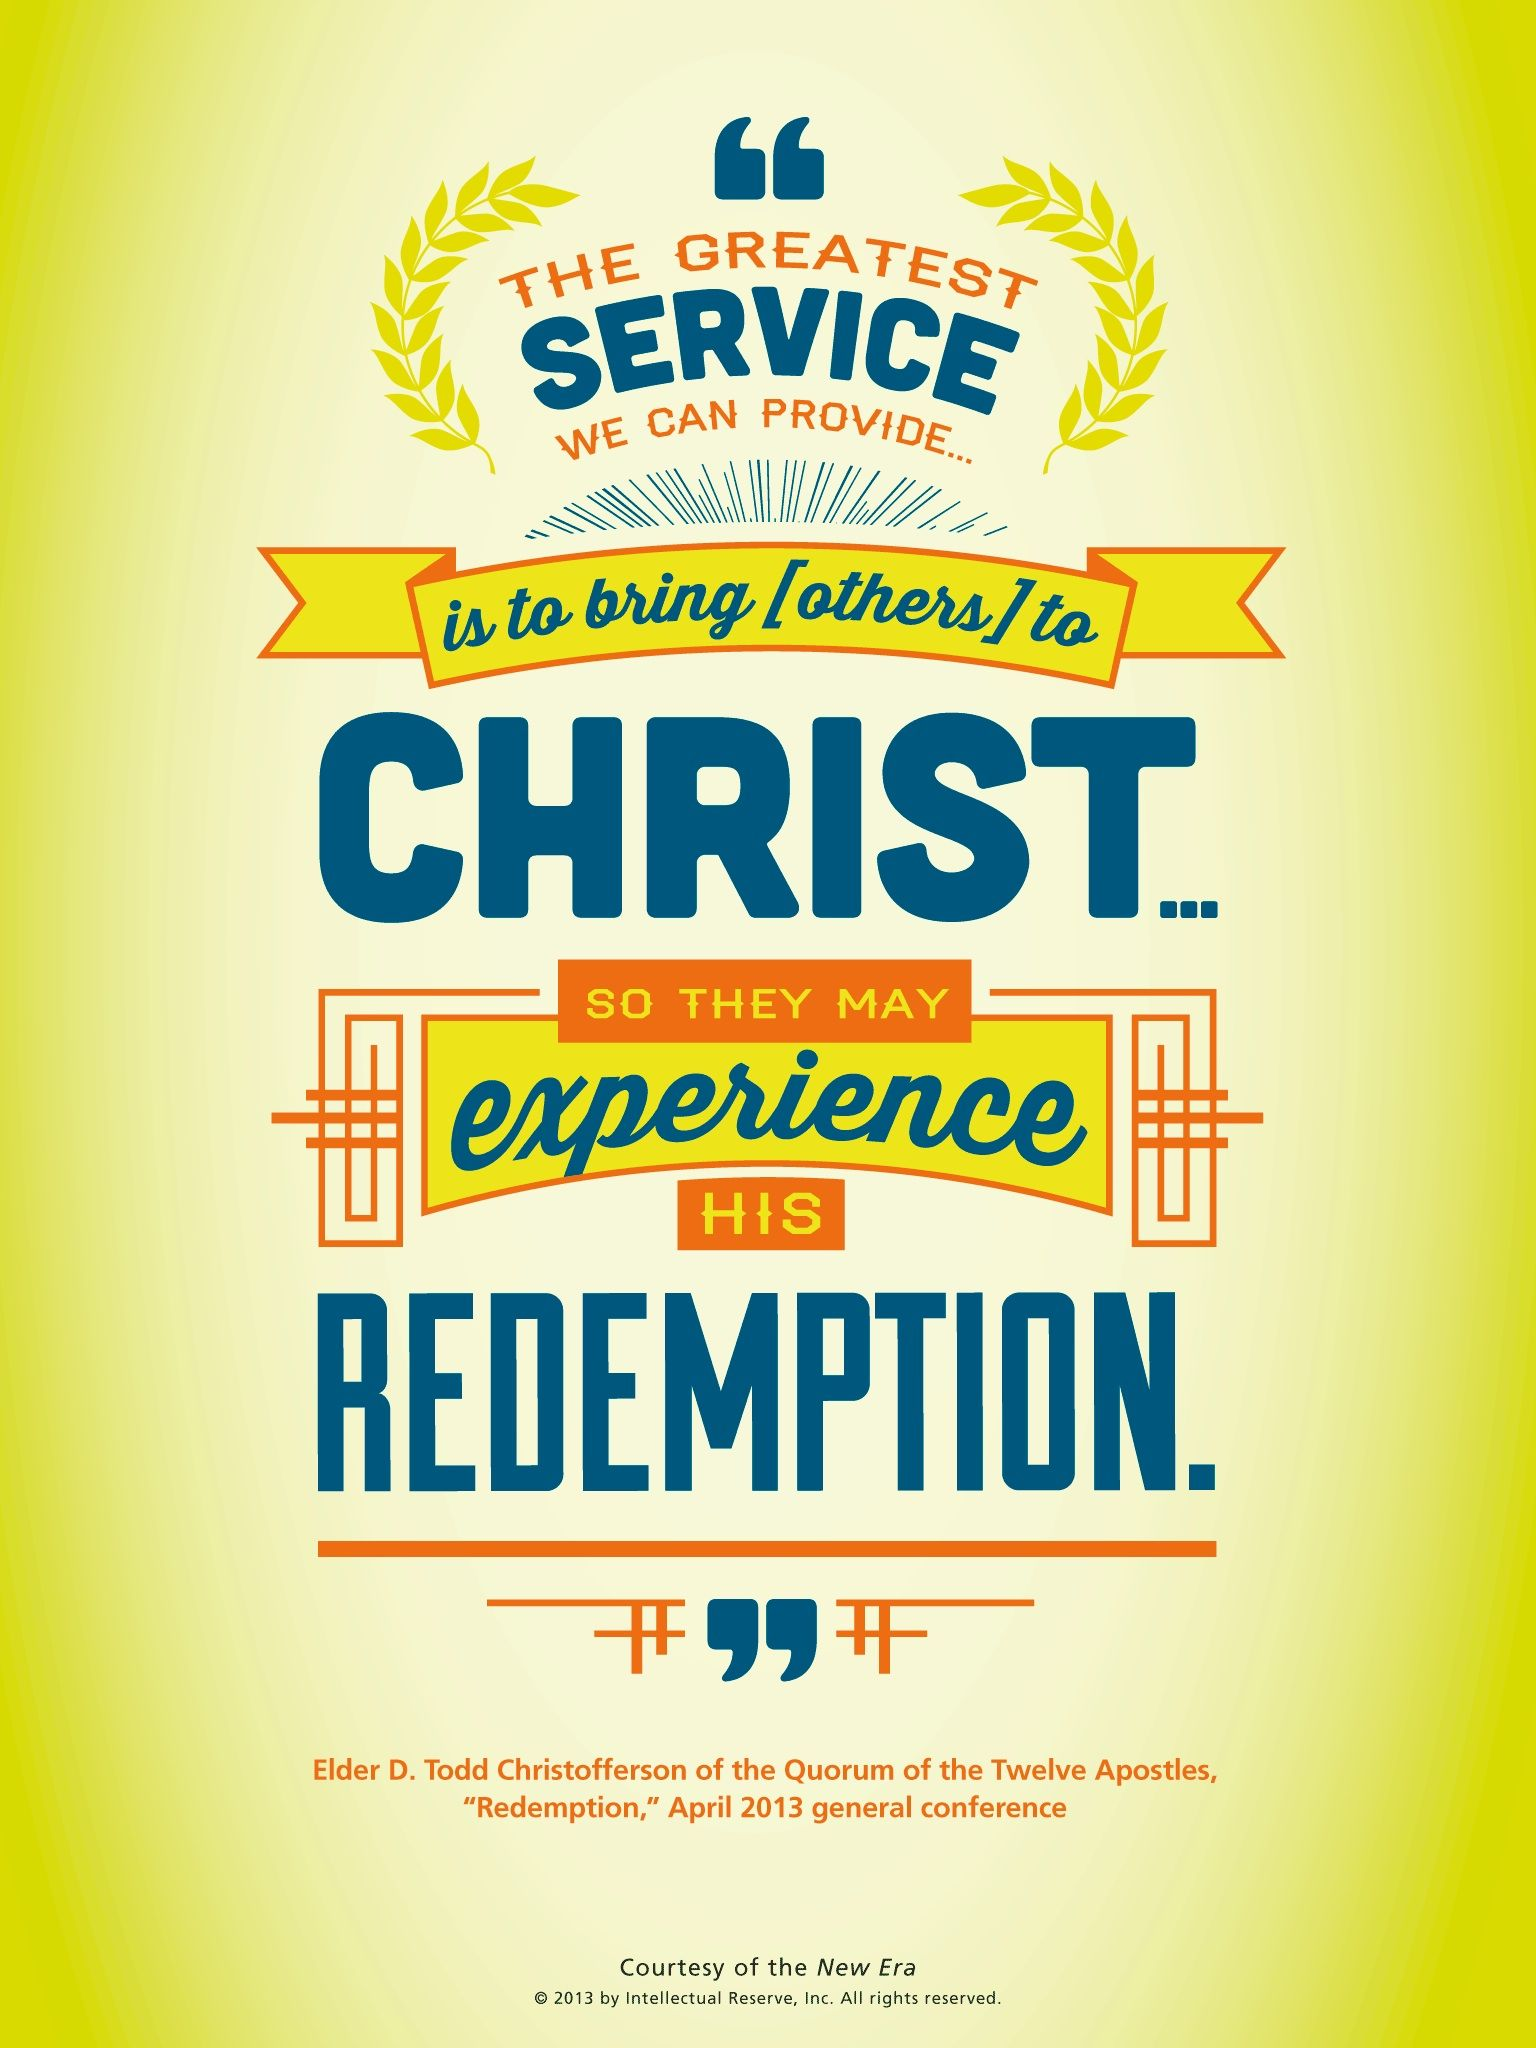 Lds quote elder d todd christofferson speaks about how